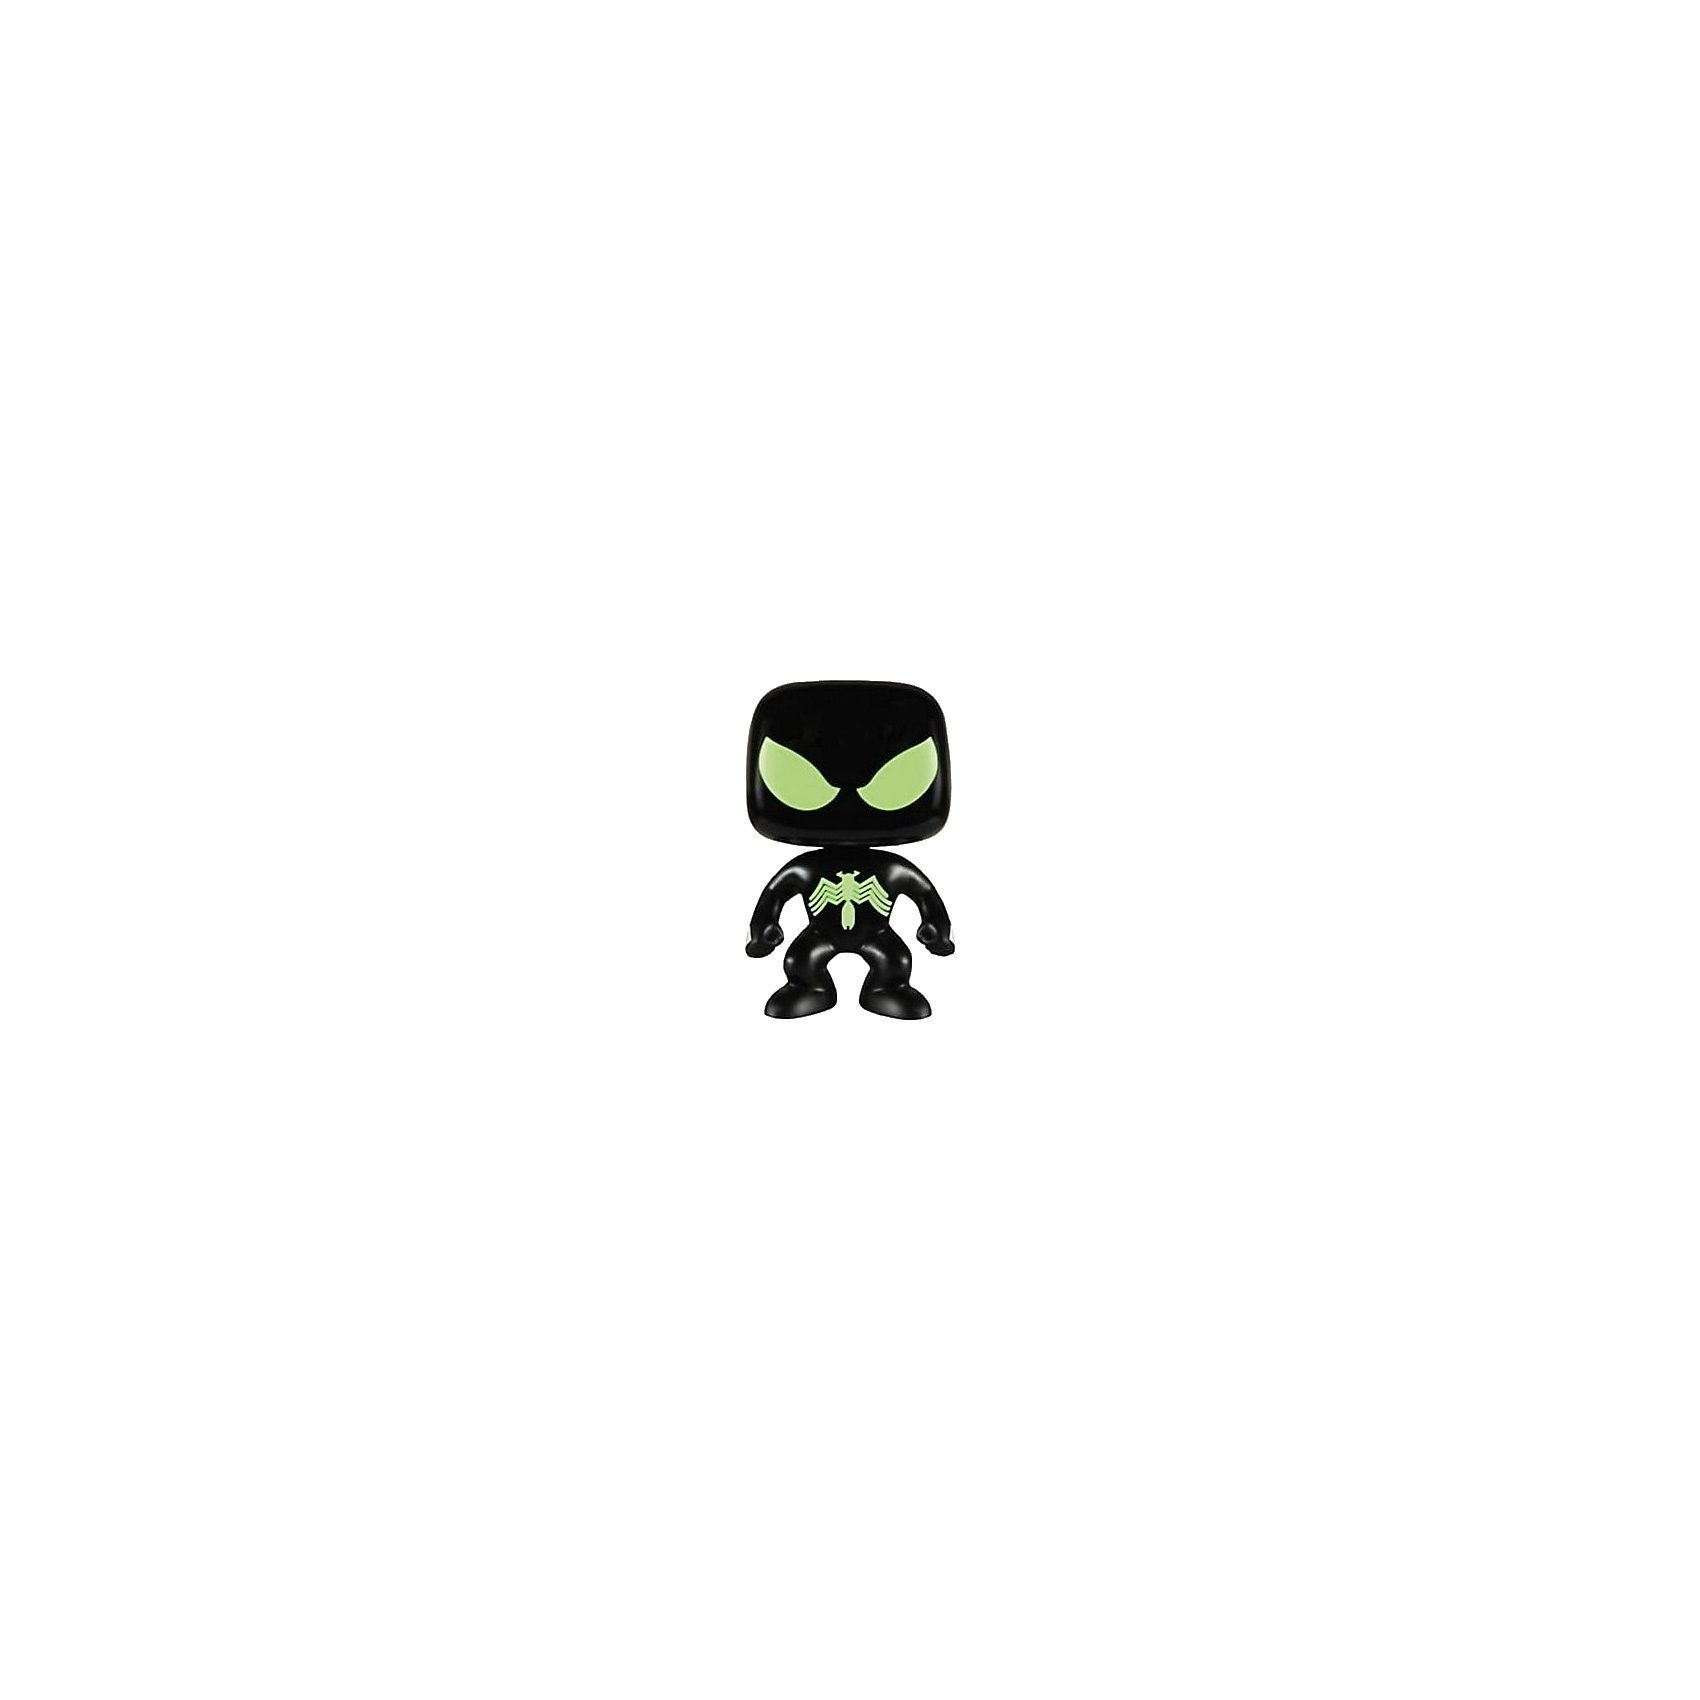 Funko Pop! Marvel - Sammelfigur Black Suit Spider-Man Glow i